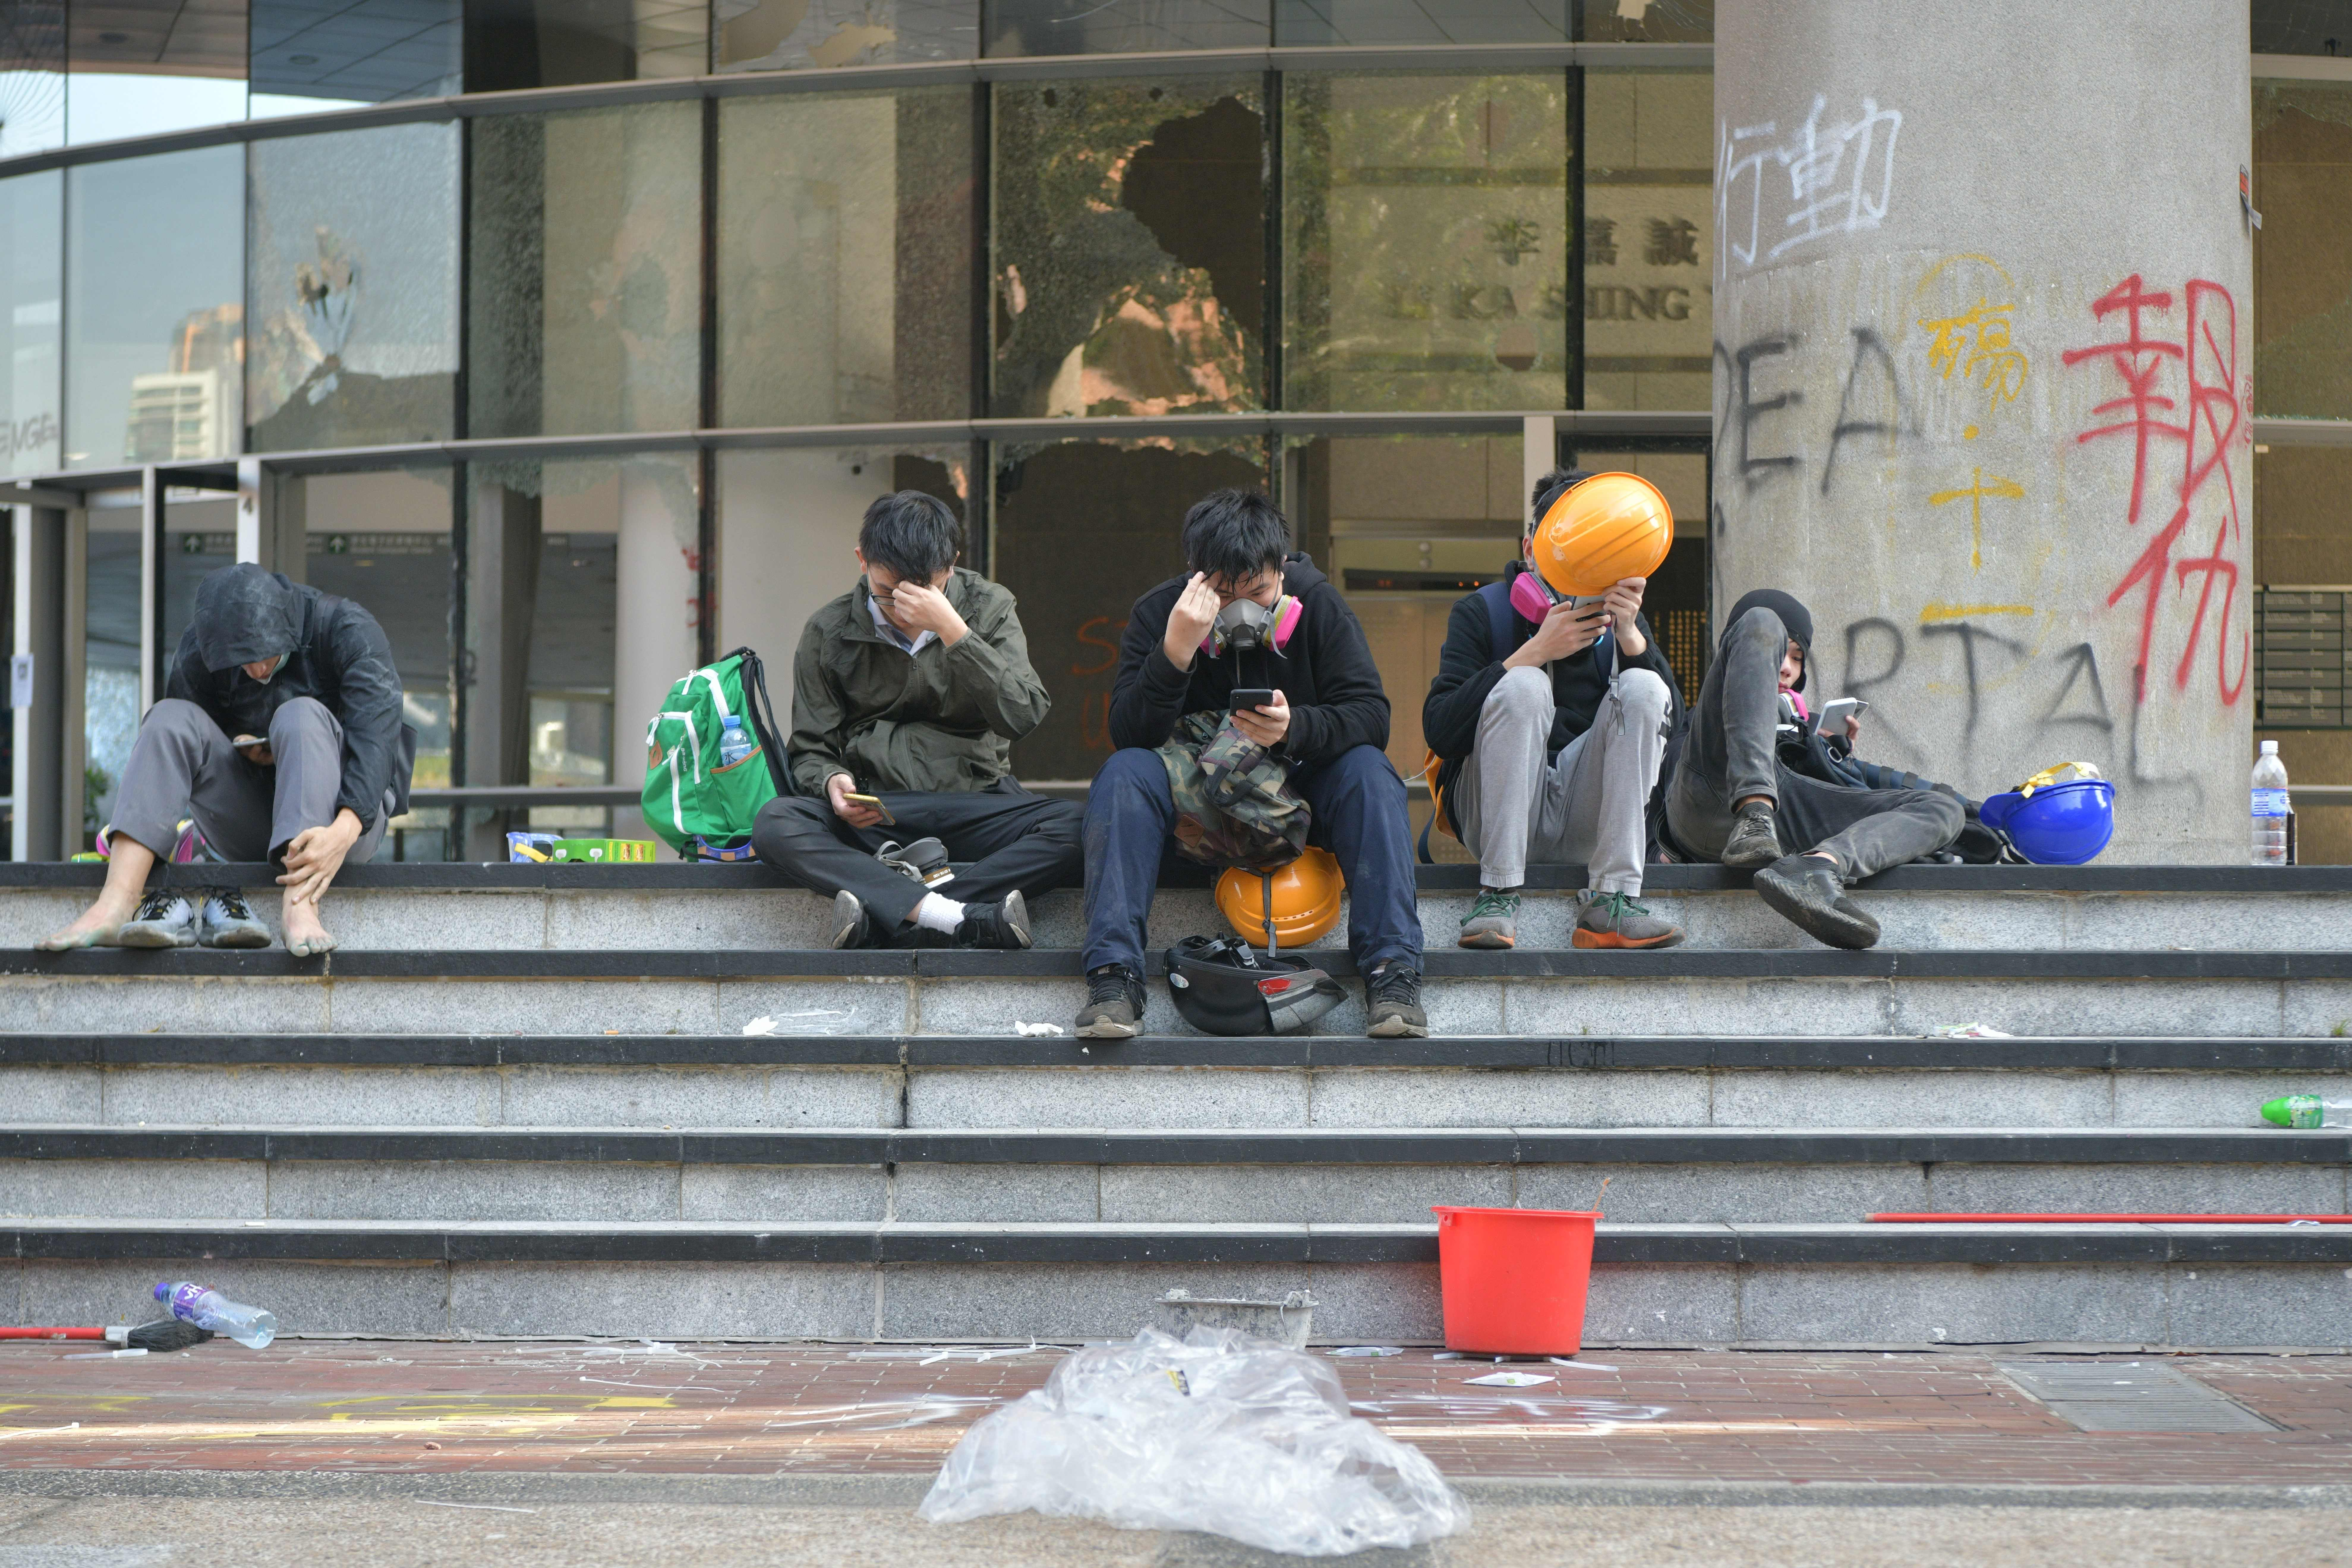 A group of protesters rest on stairs after unable to find safe passage out of Hong Kong Polytechnic University in Hung Hom district of Hong Kong on November 18.